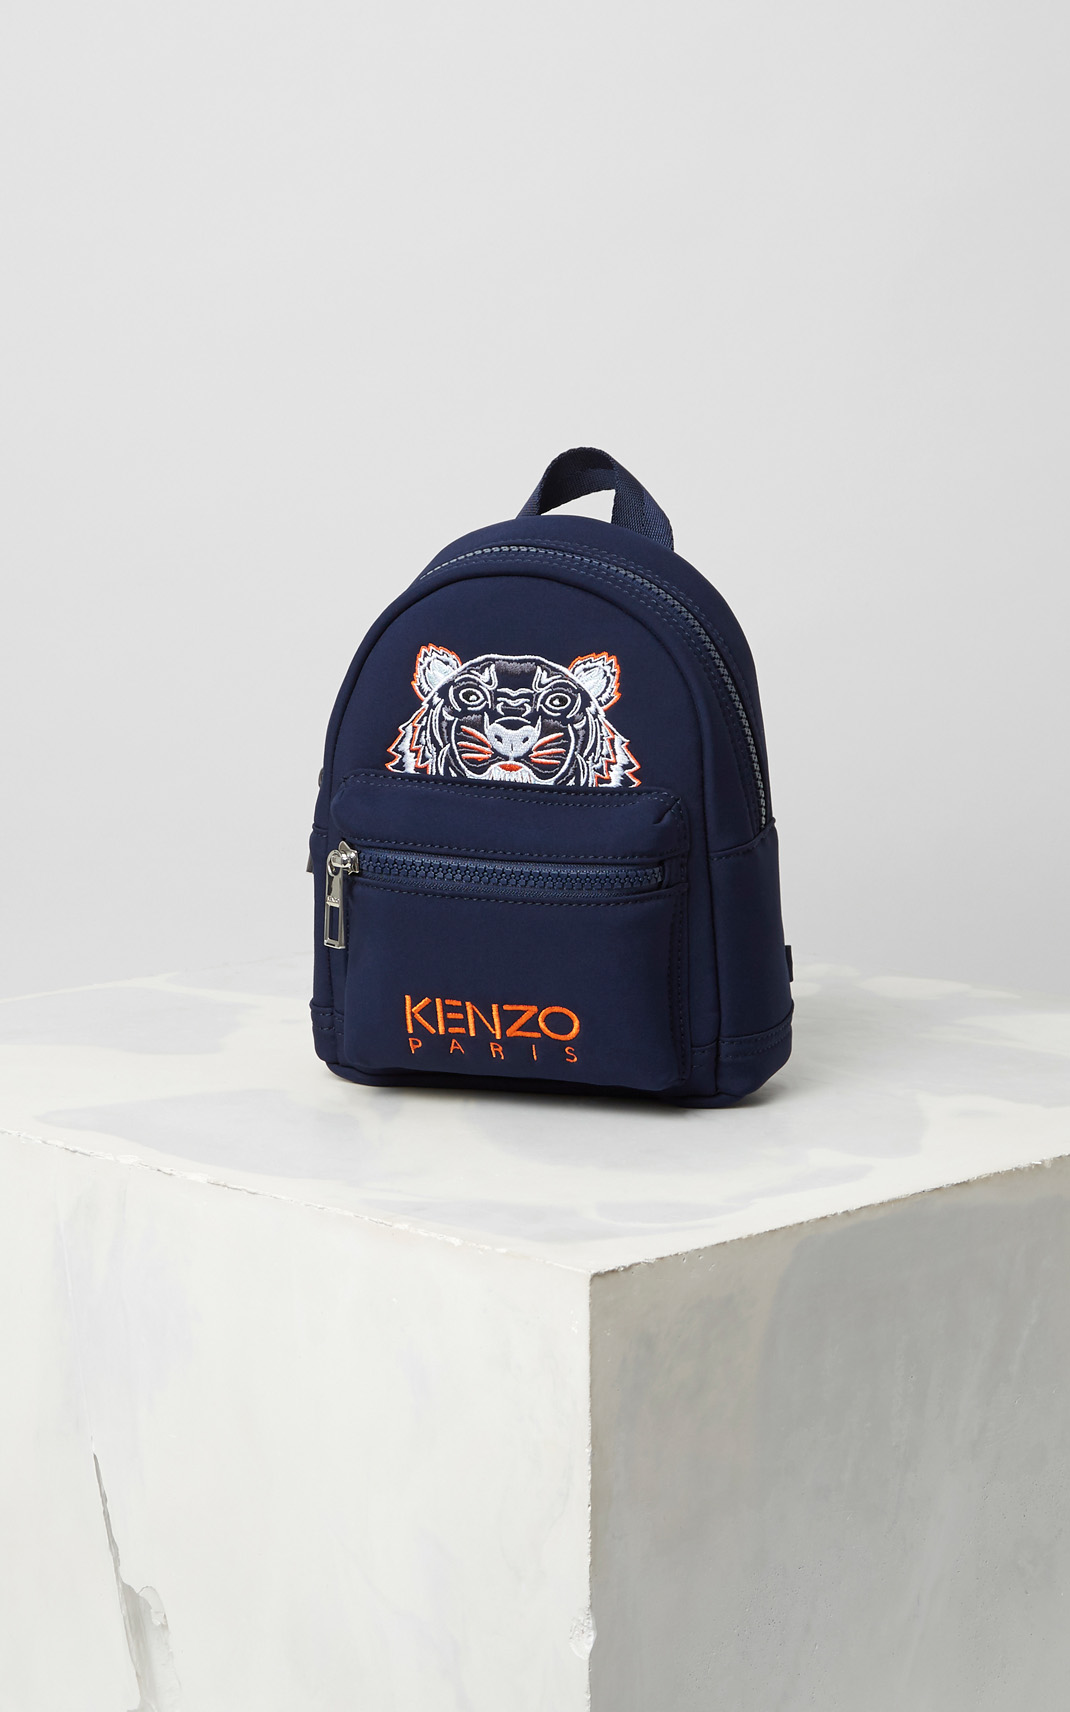 Kenzo Mini Neoprene Tiger Backpack